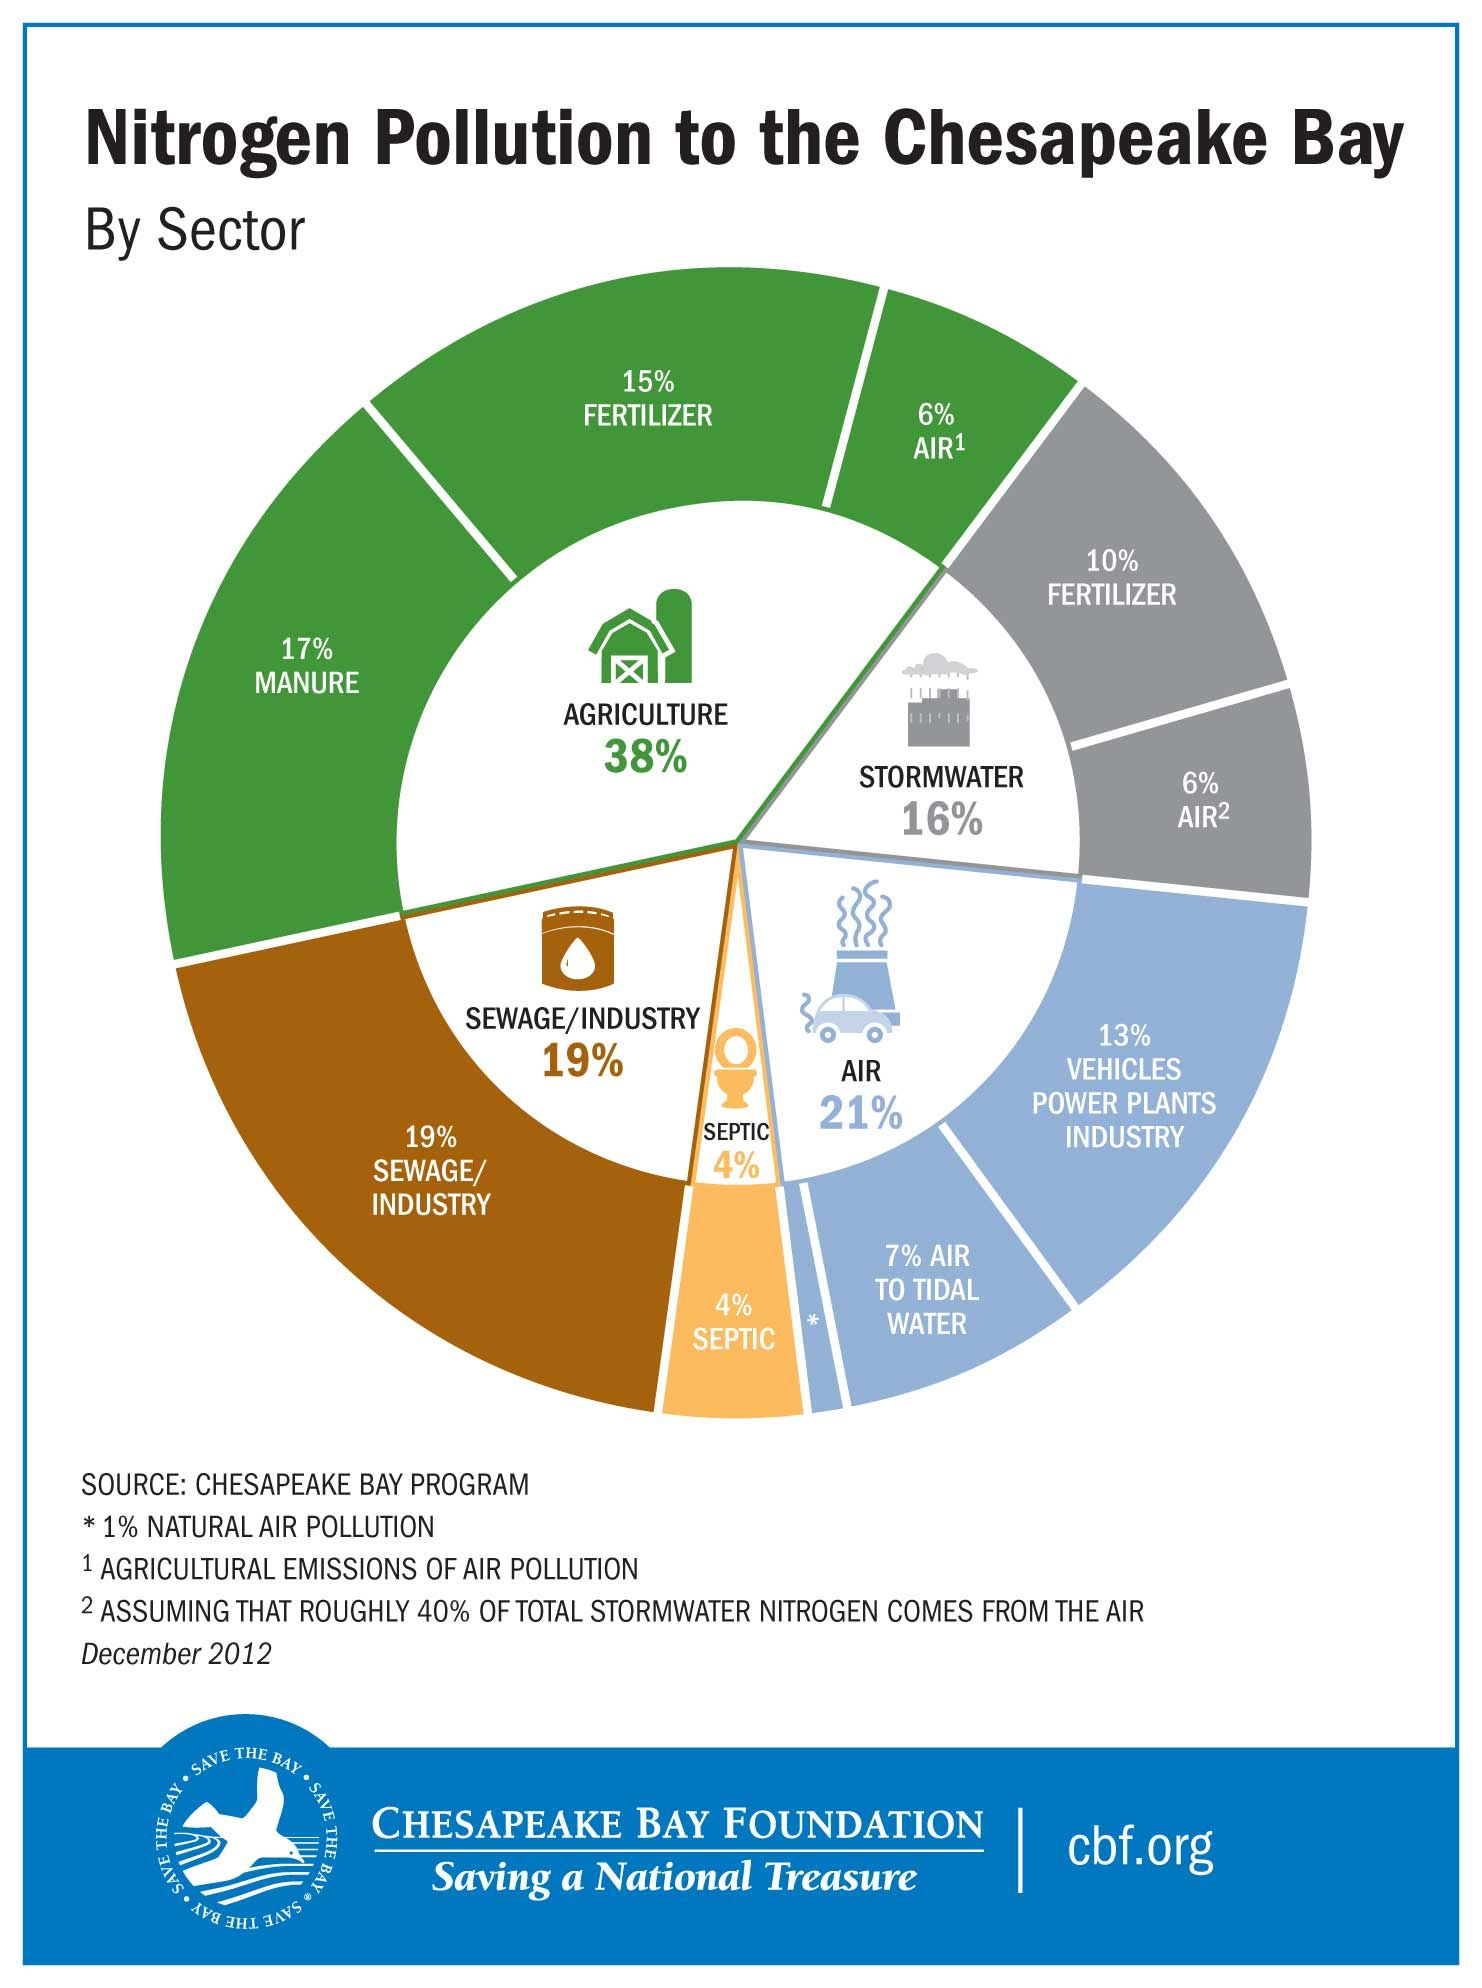 pie chart showing nitrogen pollution to the chesapeake bay by sector [ 1482 x 1988 Pixel ]